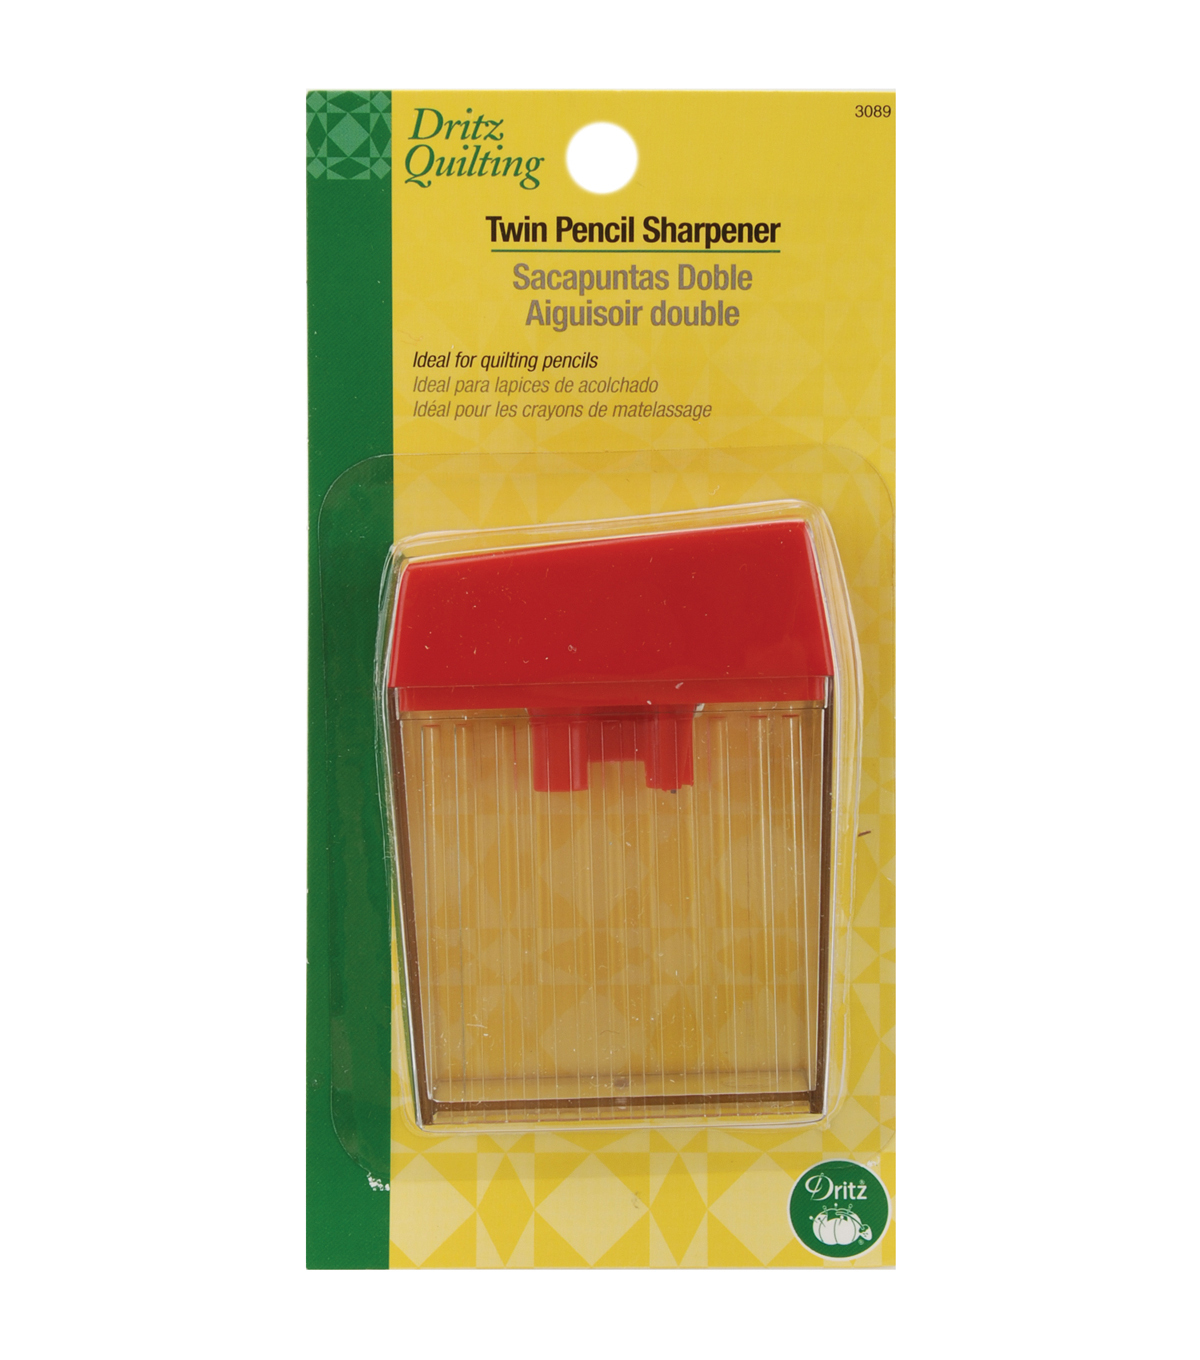 Dritz Quilting Twin Pencil Sharpener